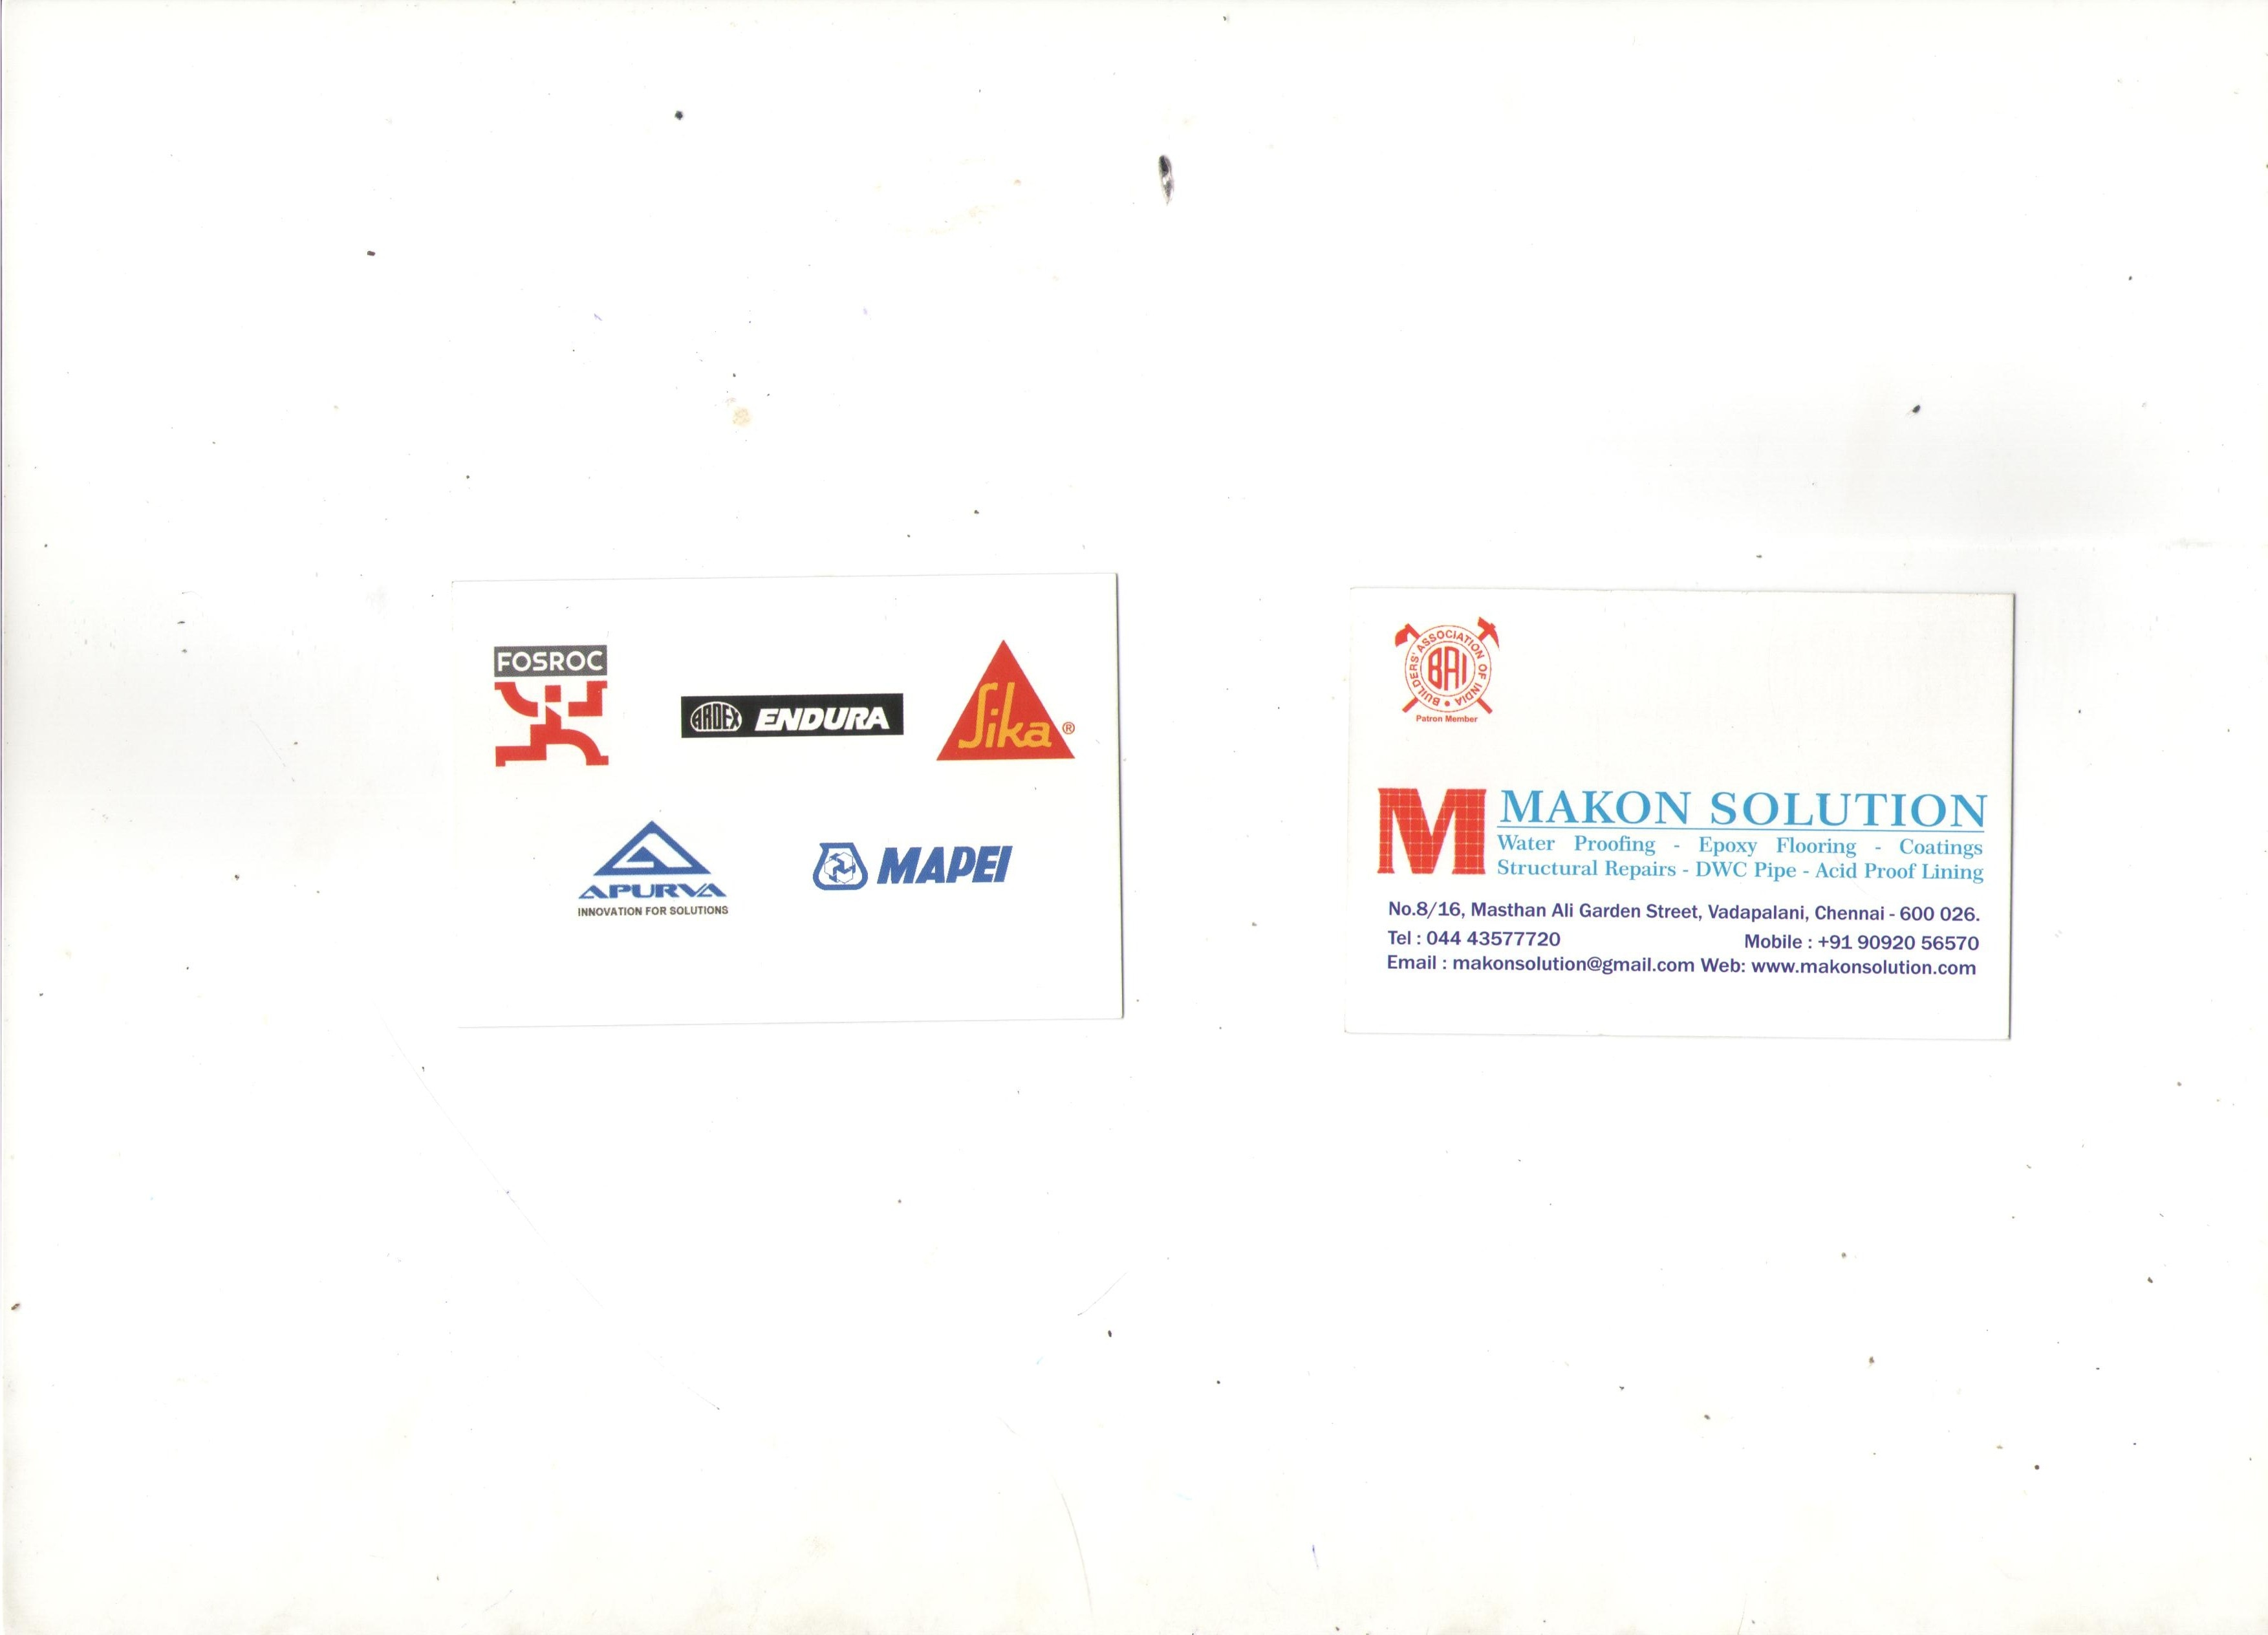 Logo of Makon Solution